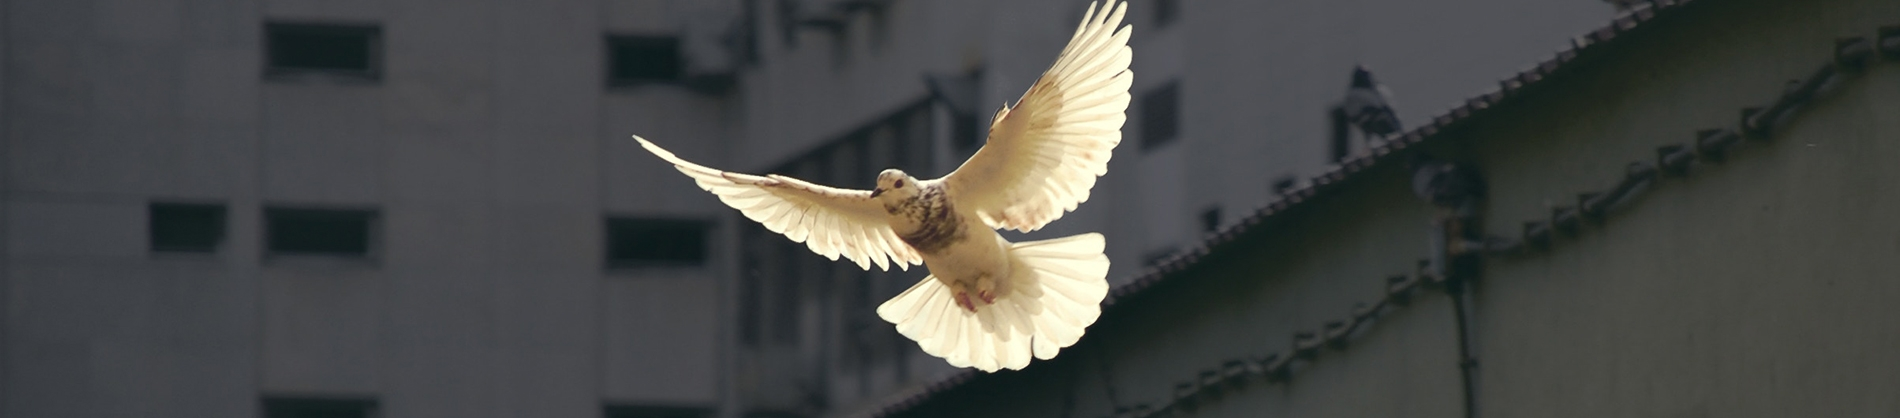 A white dove flying over buildings